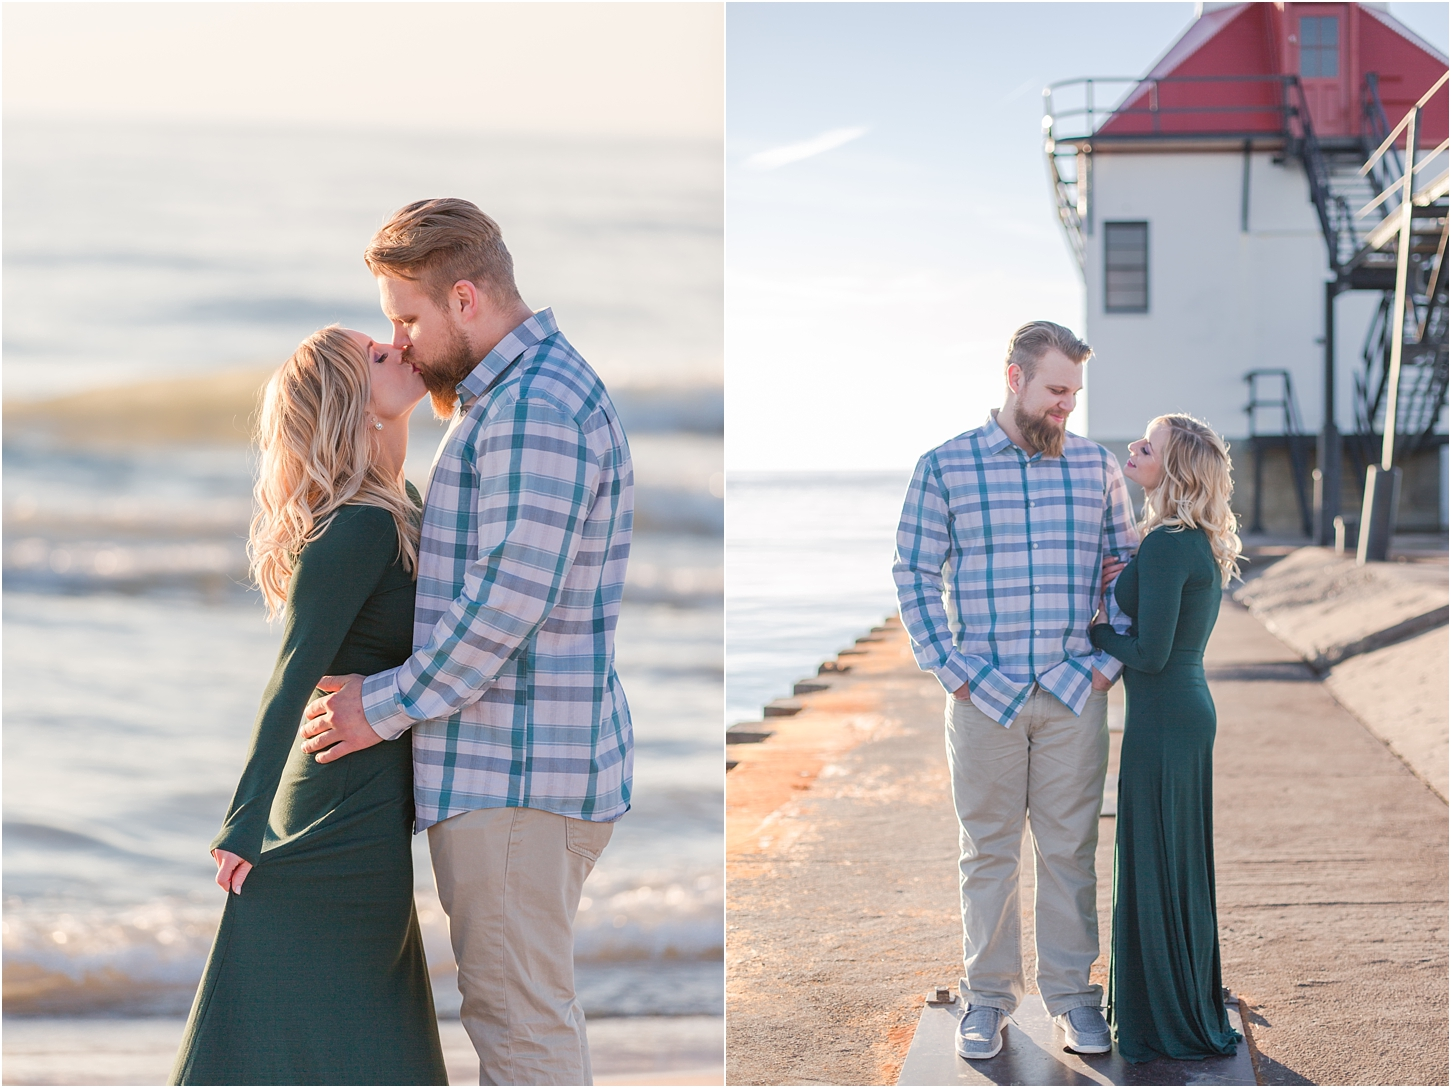 romantic-sunset-beach-engagement-photos-at-silver-beach-in-saint-joseph-mi-by-courtney-carolyn-photography_0027.jpg